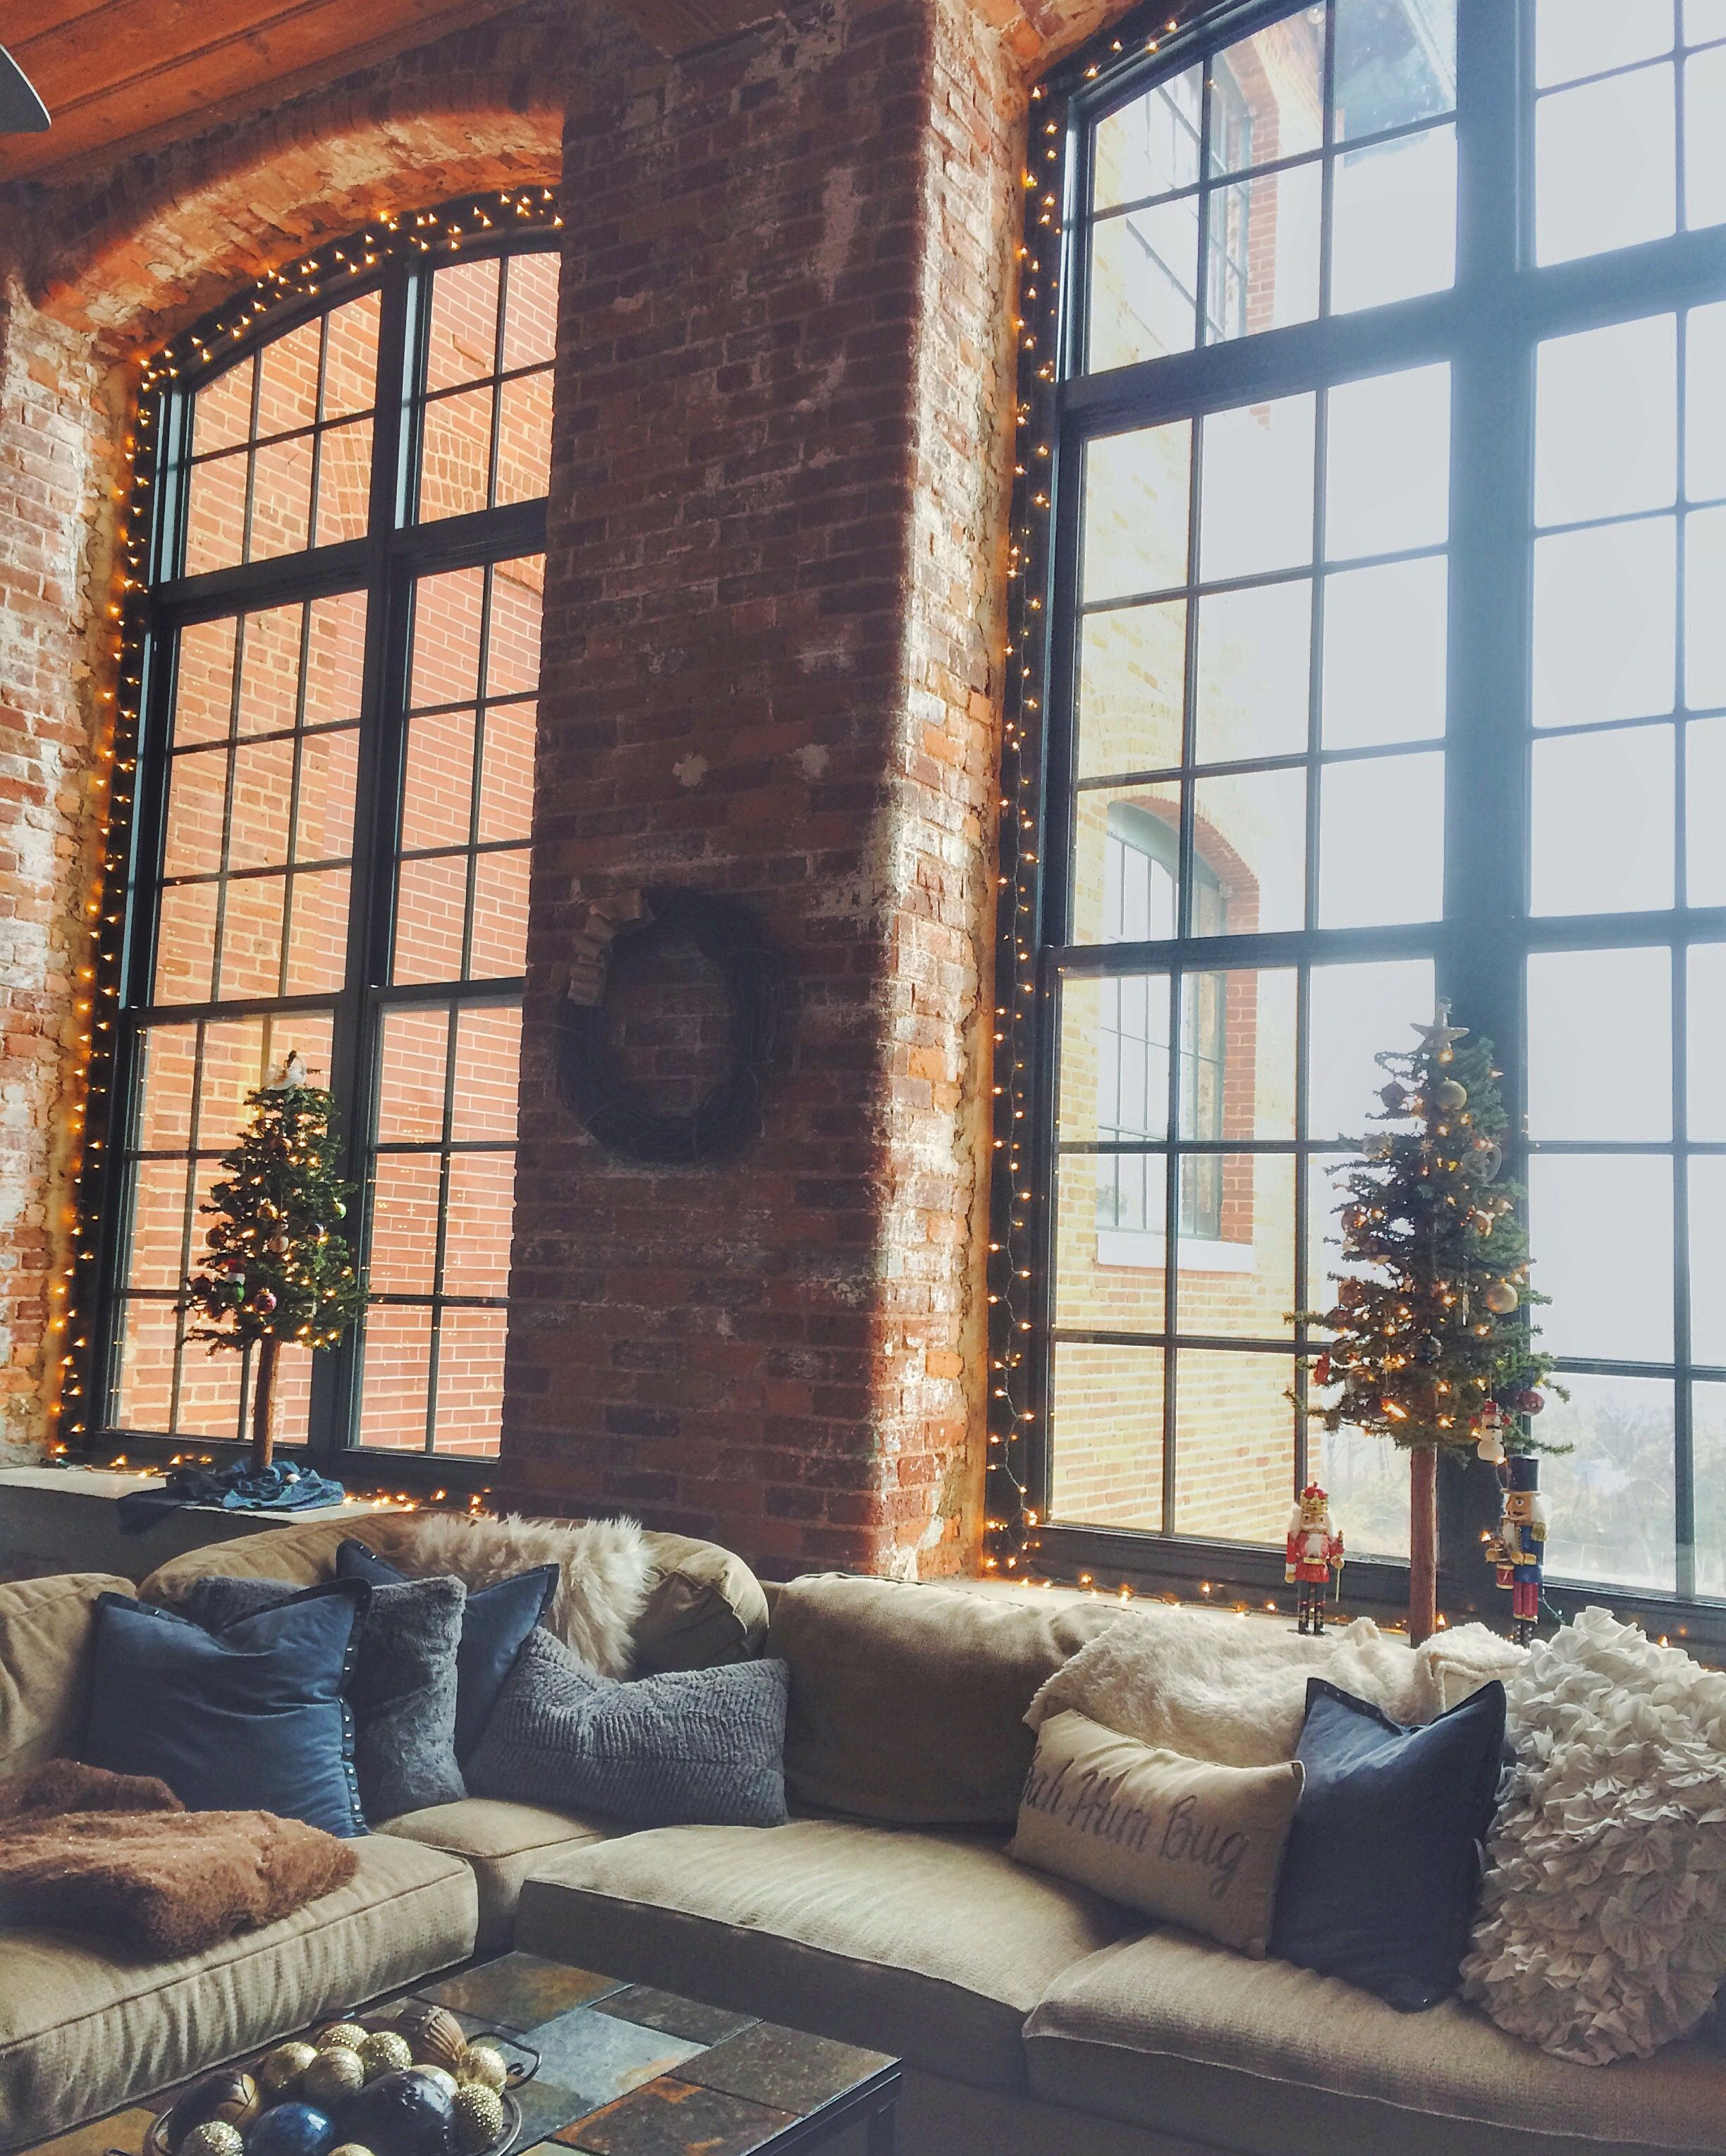 Apartments With Exposed Brick Cozy Loft Style Apartment Christmas Decor Exposed Brick